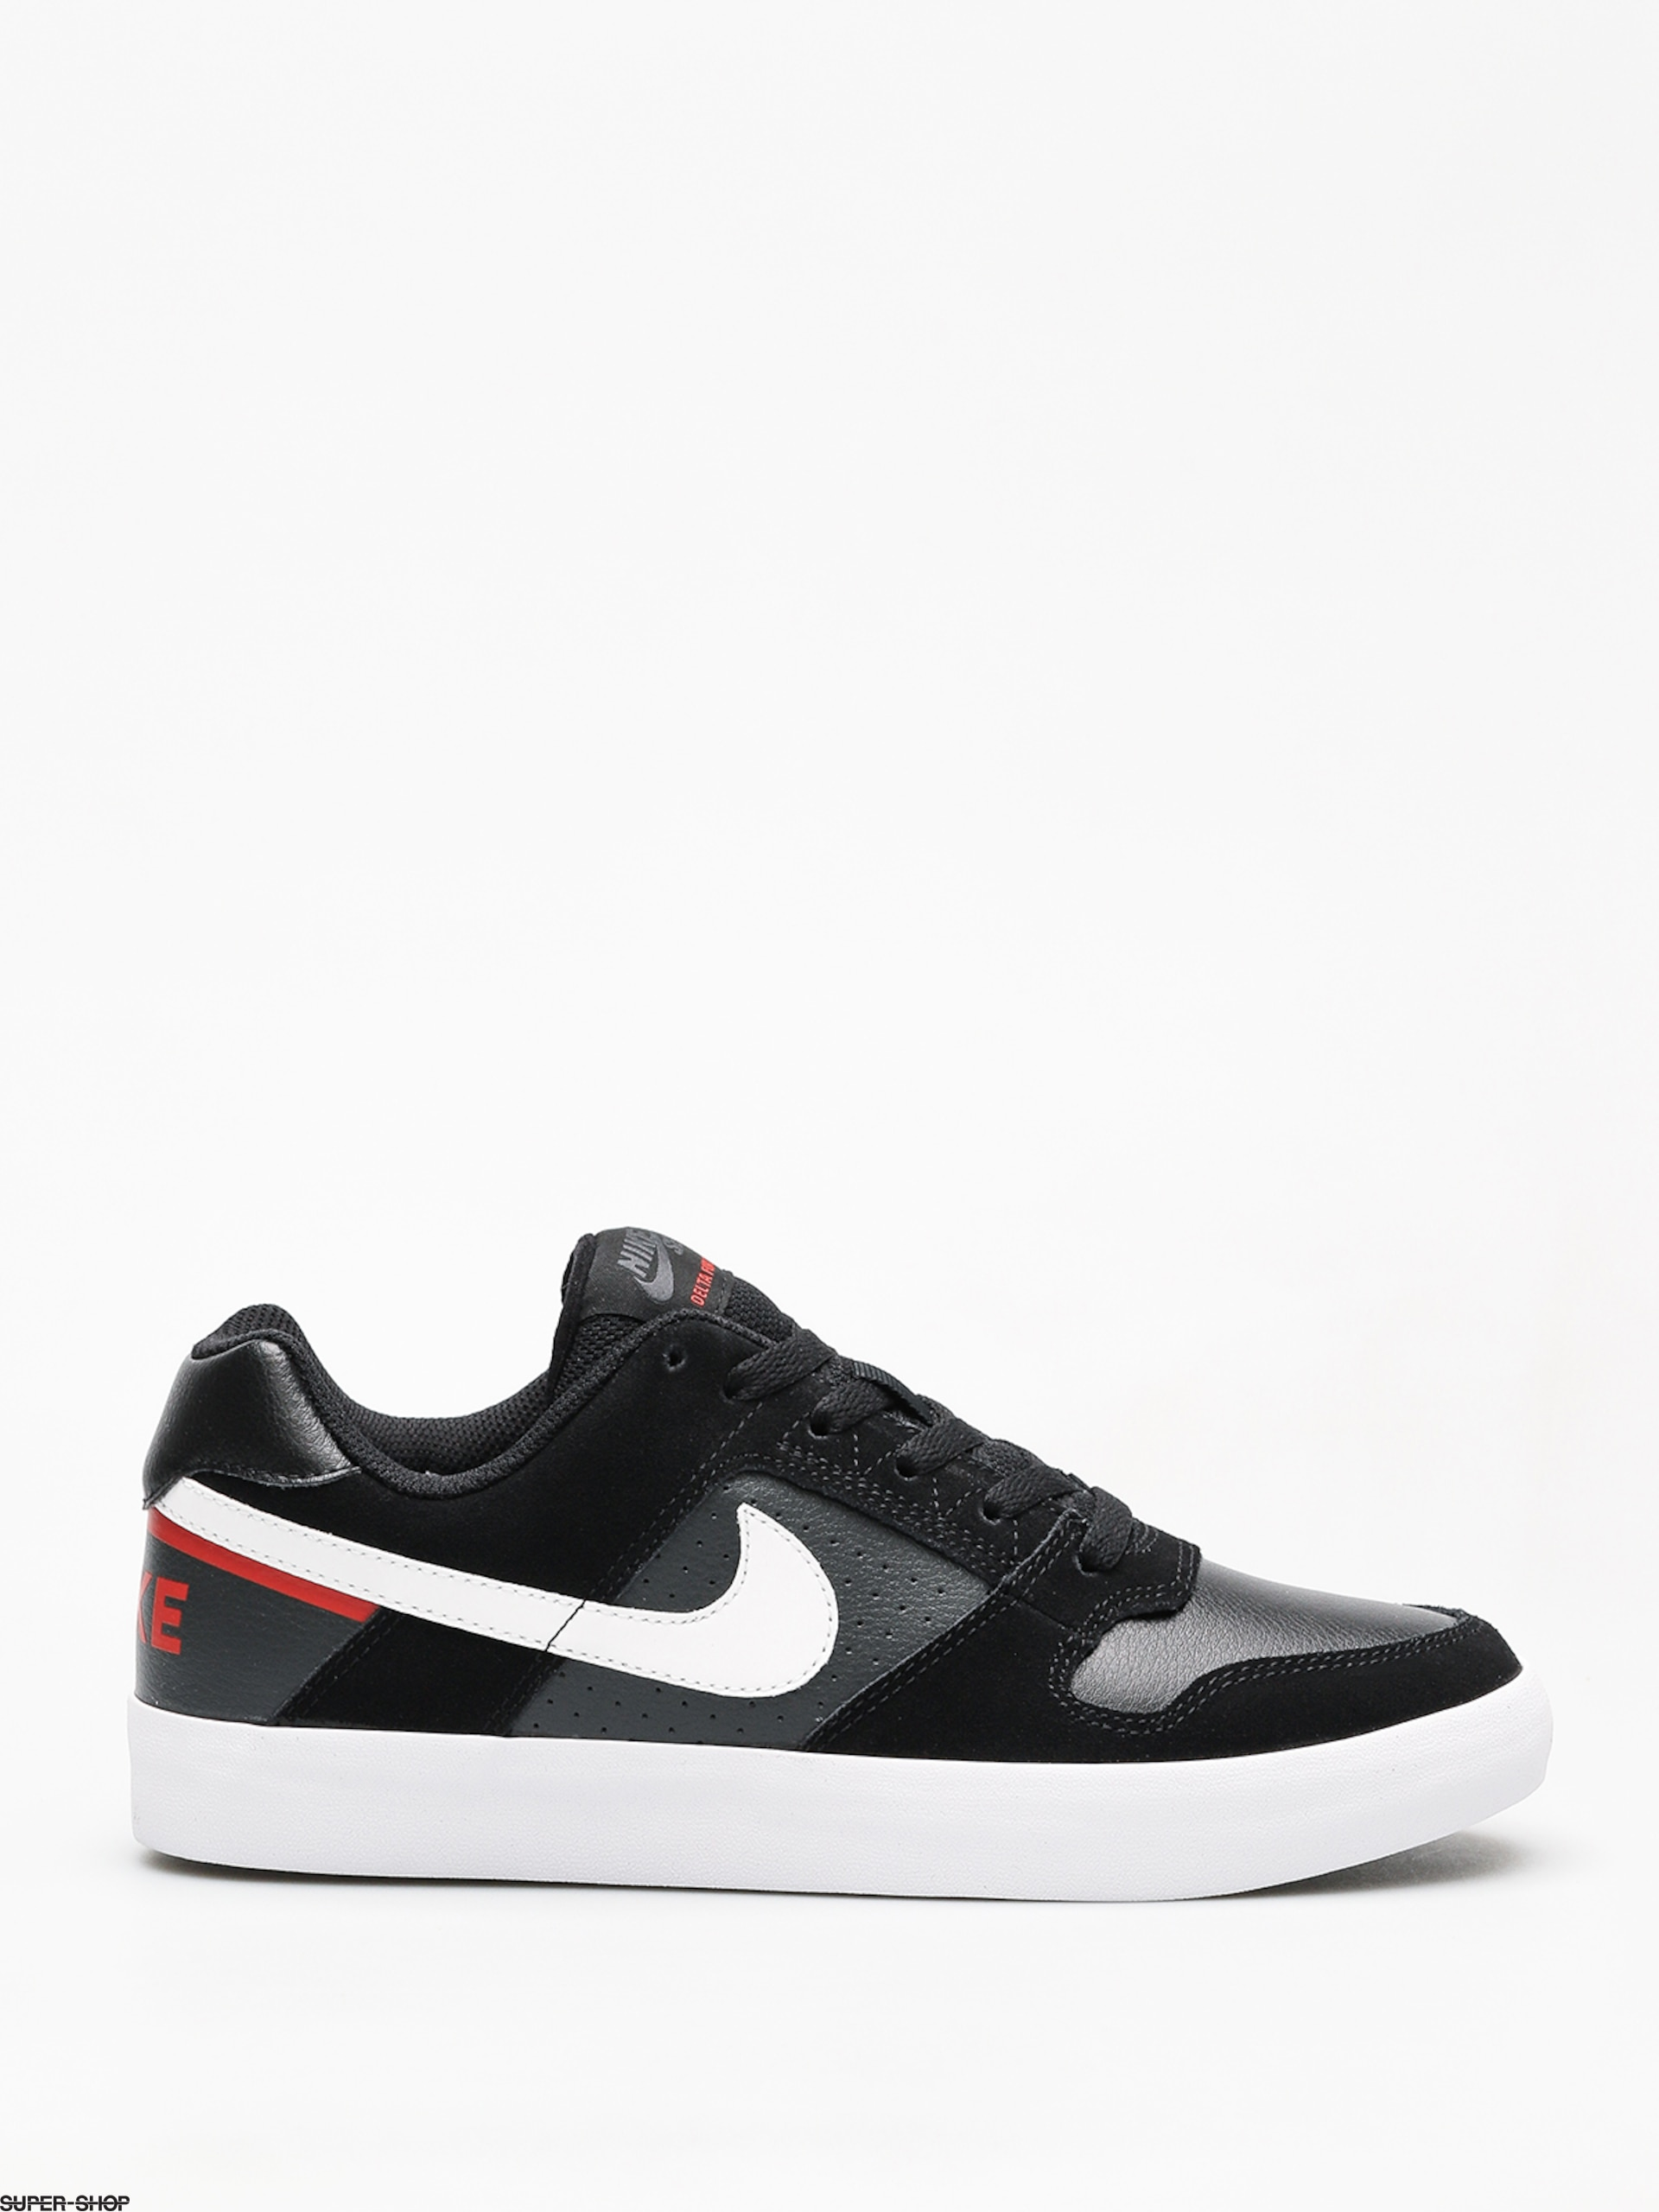 Sobrevivir chasquido haz  Nike SB Sb Delta Force Vulc Shoes (black/white habanero red)